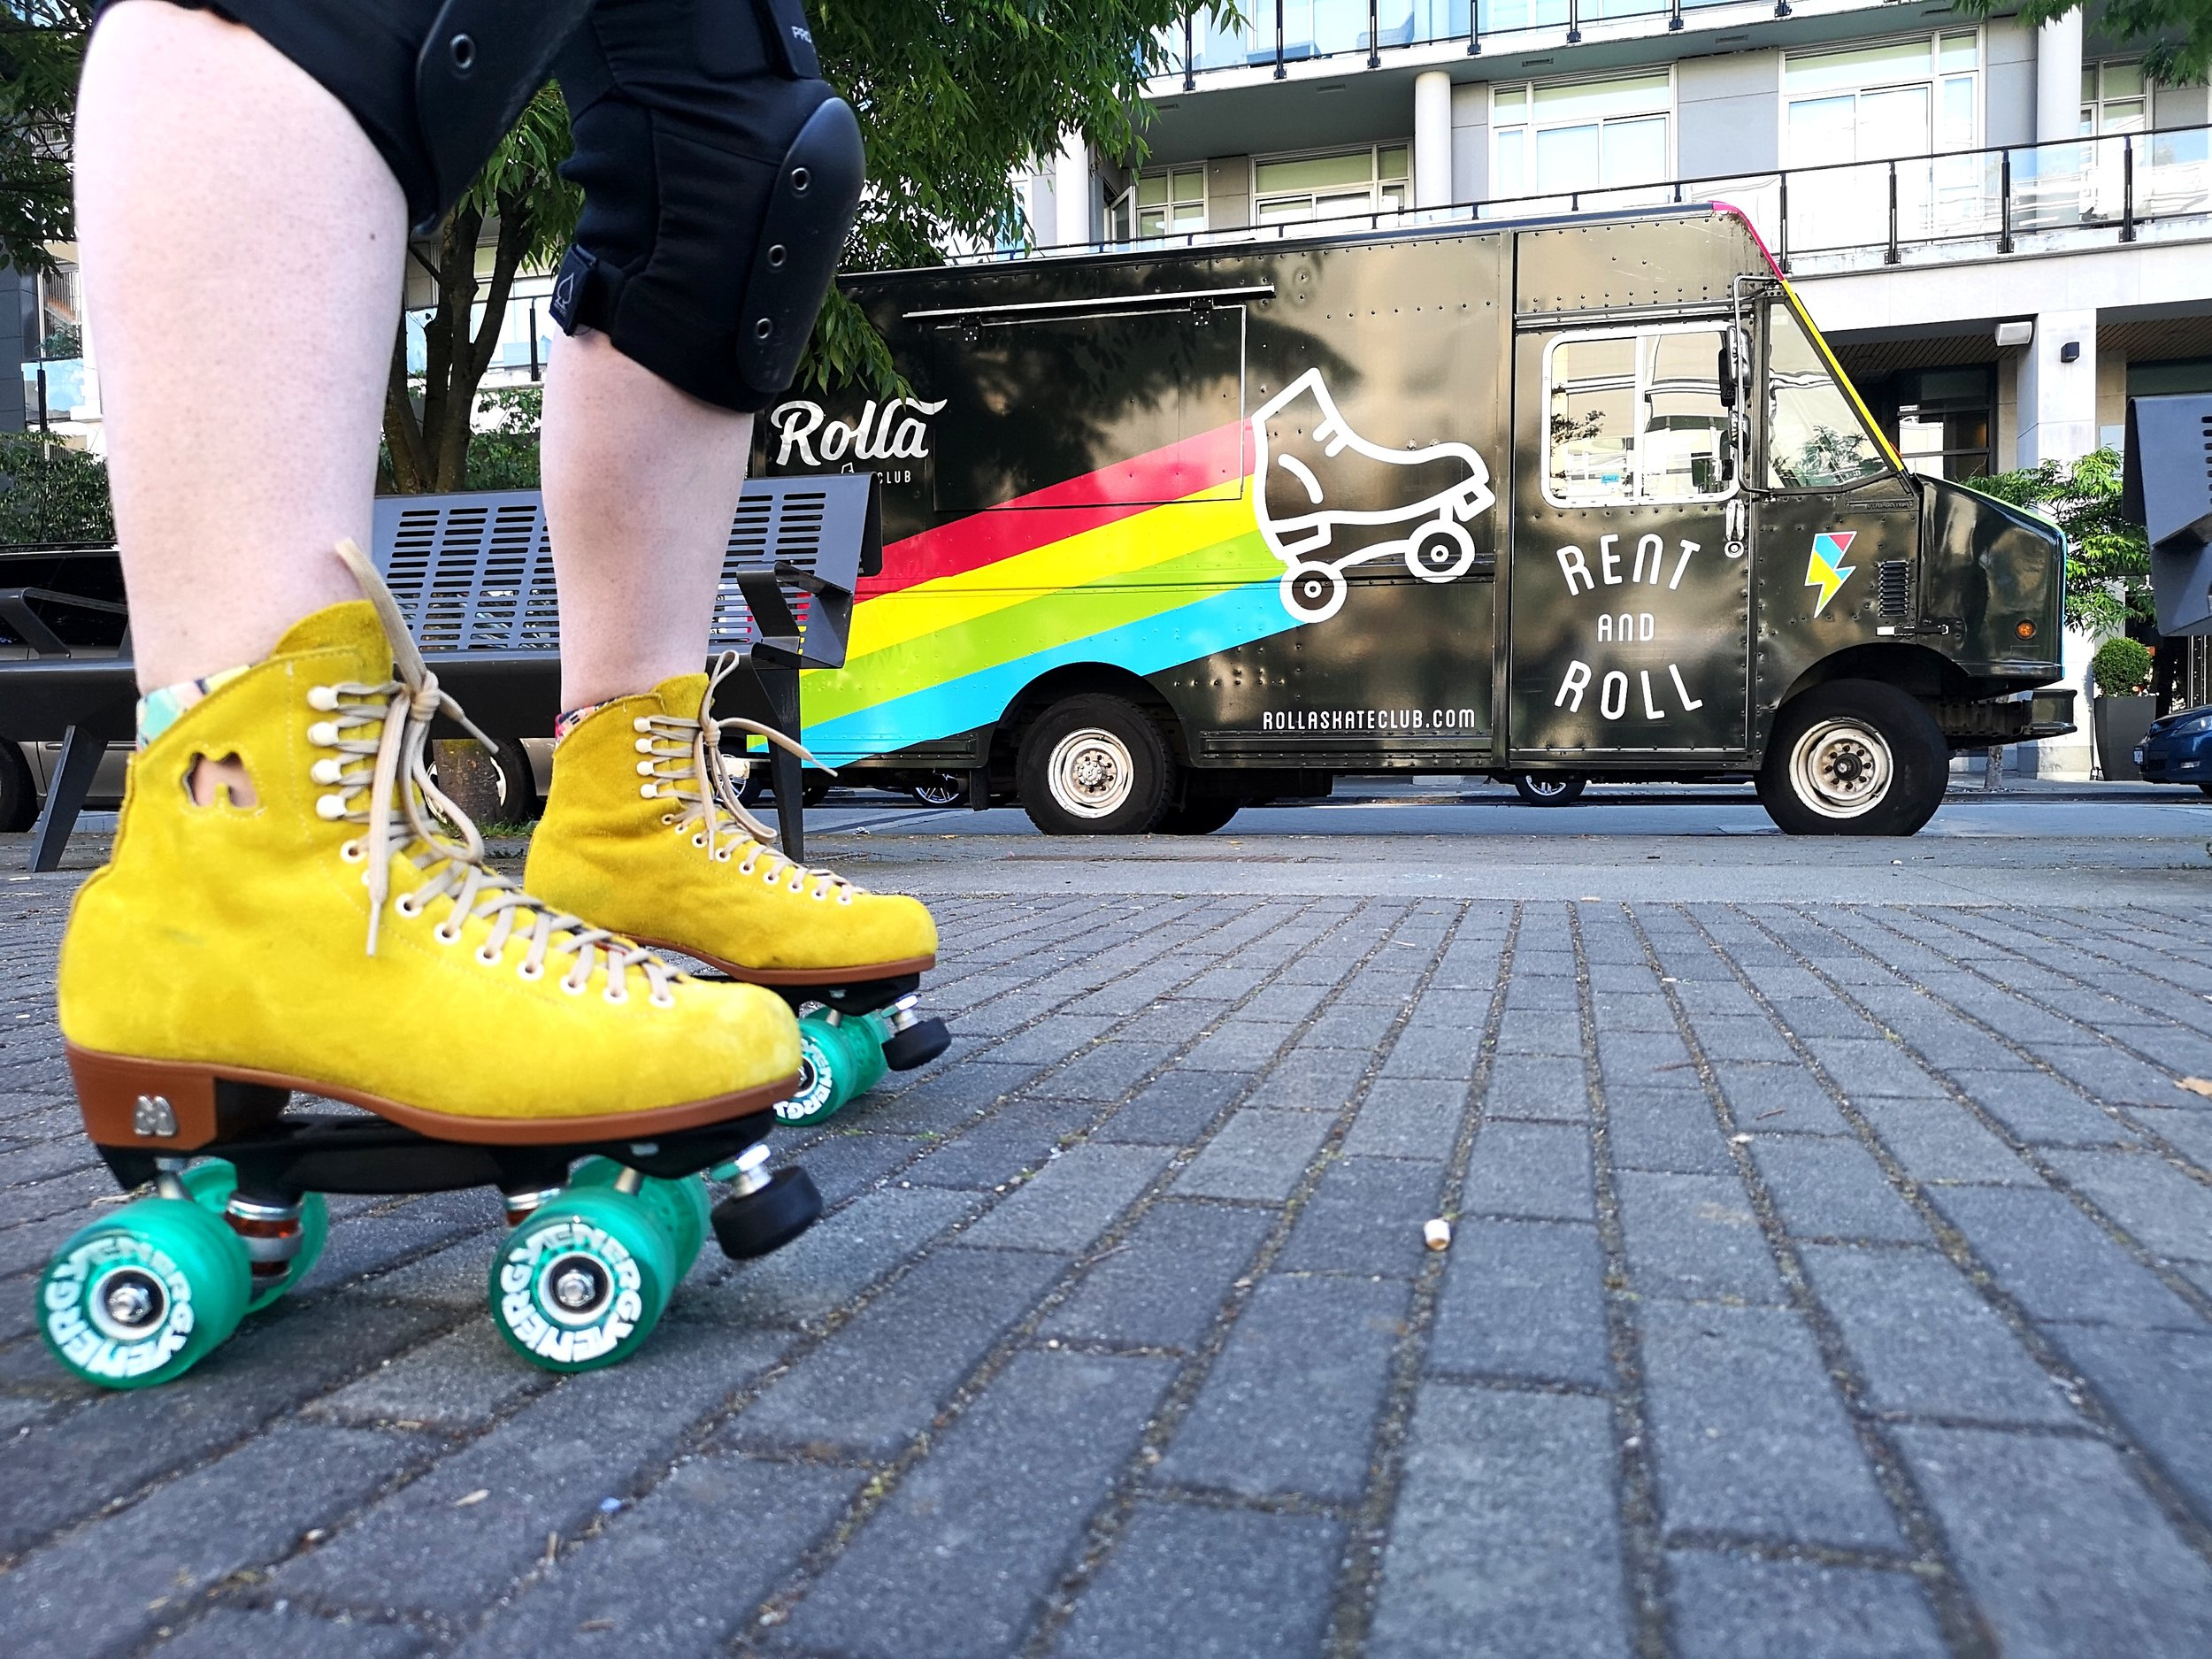 Pop Up Roller Rink - presented by Rolla Skate Club - Where: Main St. between 11th and 12th AveWhen: 3PM - 7PMBreak out of your shoes and into a pair of classic rollerskates with Rolla Skate Club, right in the middle of Main Street! Get your heart rate up and feel the wind in your hair as you roll and bounce to the sounds of the Main Stage DJs and artists. BYO skates, or rent for $10 from the Rolla Skate Truck. Maybe you'll bust out some tricks from your childhood (shoot the duck, anyone?) or learn some new ones from our jam skaters on site. Everyone is welcome, and protective gear is available (little kids should bring a bike helmet). Rolla Skate Club is a community of bad-ass women on wheels, and we hope you'll join the party!